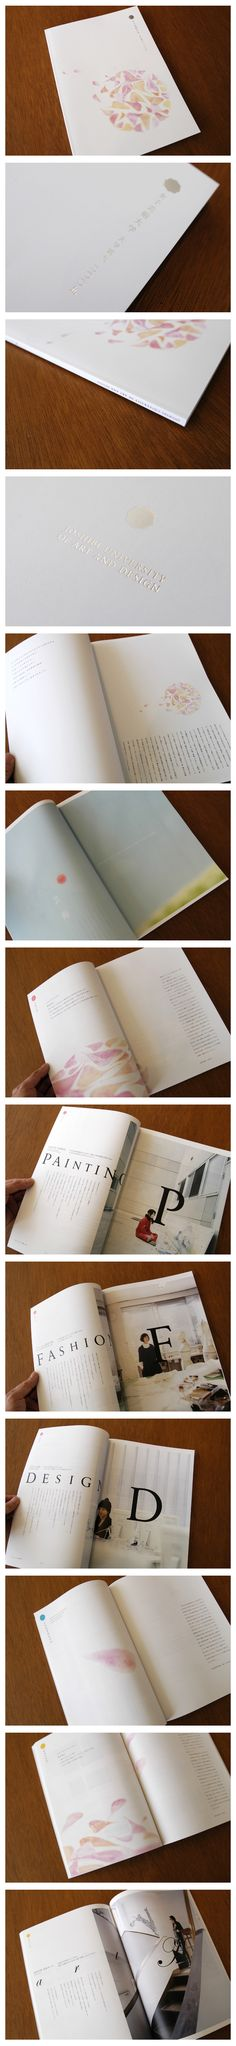 Yoshibi University of Art and Design Book Layout